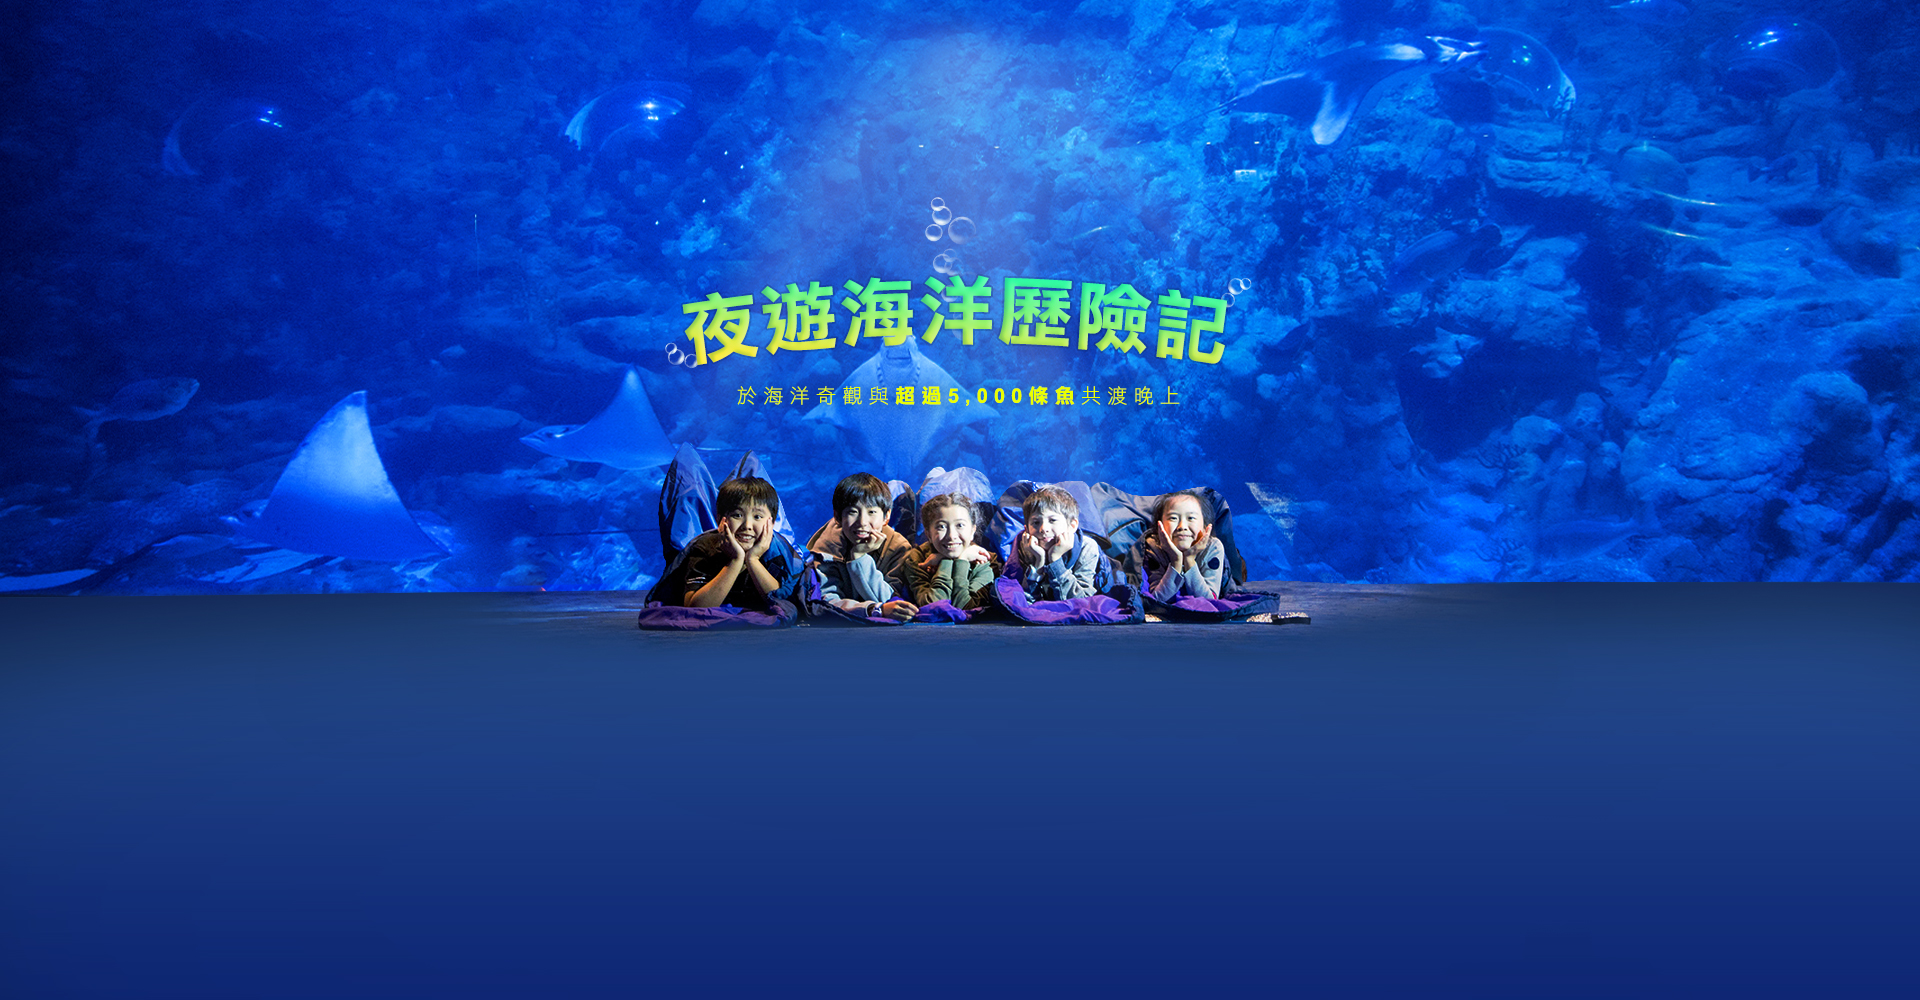 https://media.oceanpark.com.hk/files/s3fs-public/homepage_banner_ANE_desktop_TC.jpg